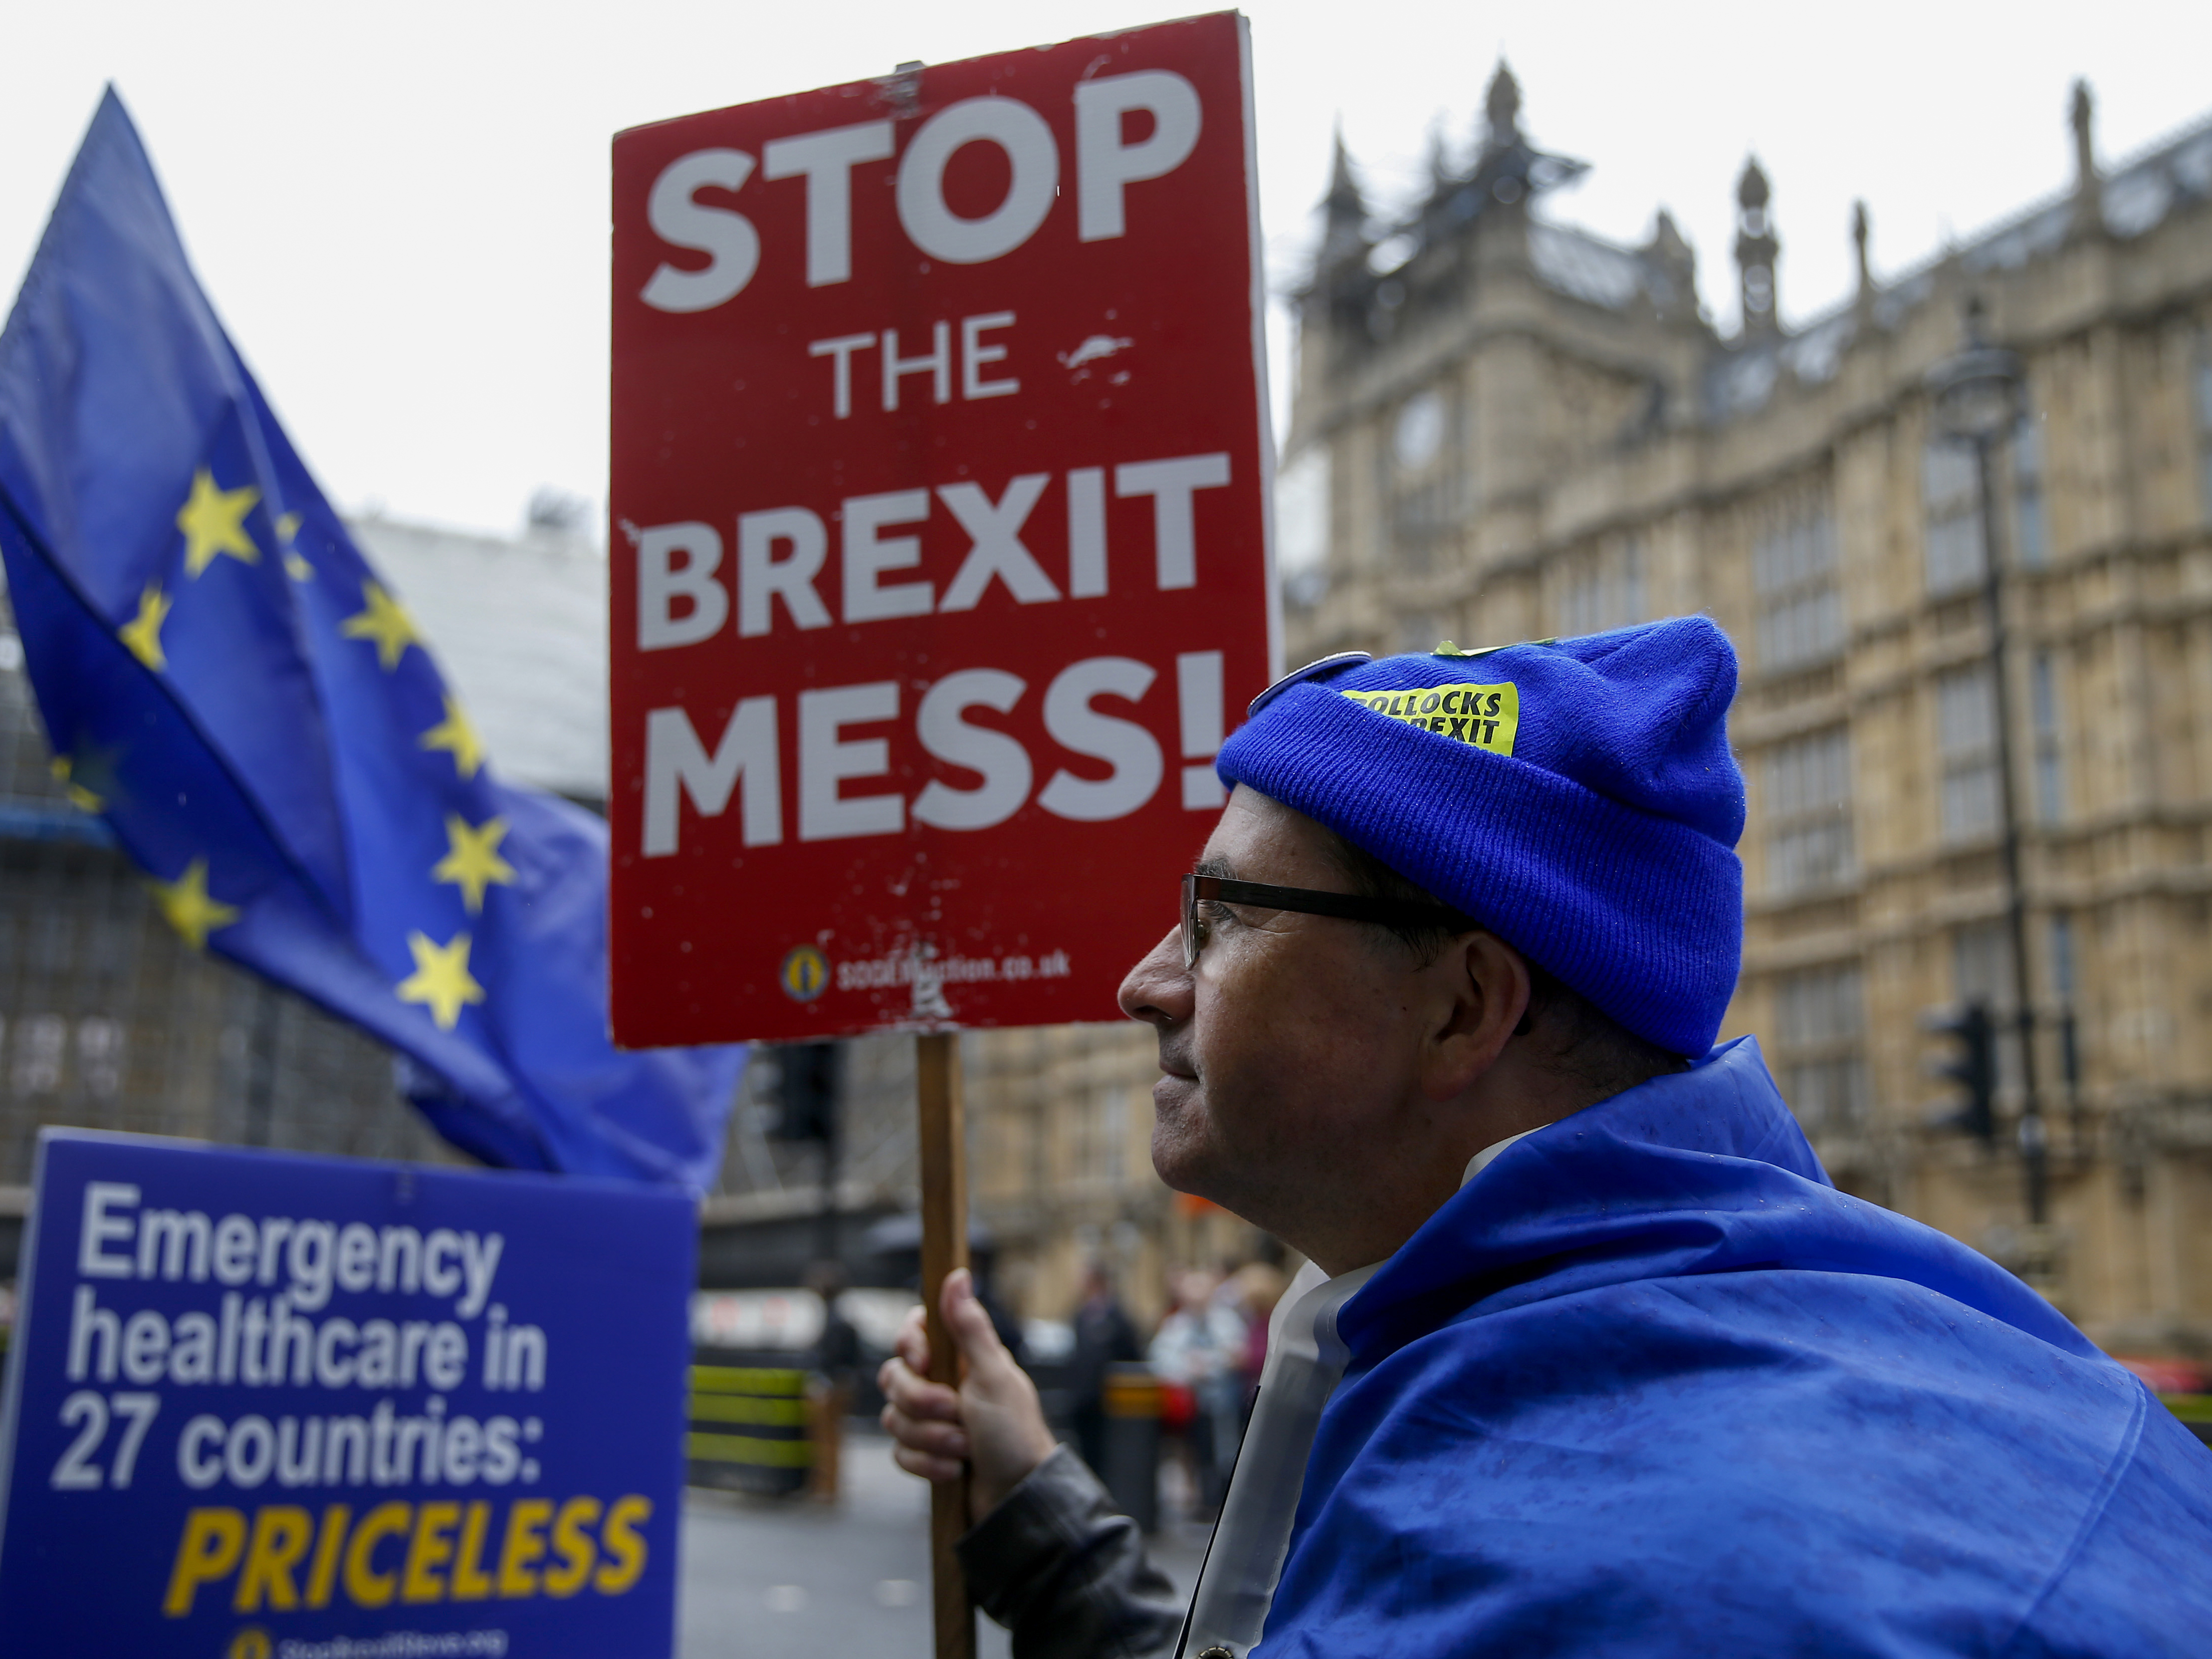 U.K. Warns of Protests, Chaotic Border Scenes in 'Worst-Case' Brexit Report